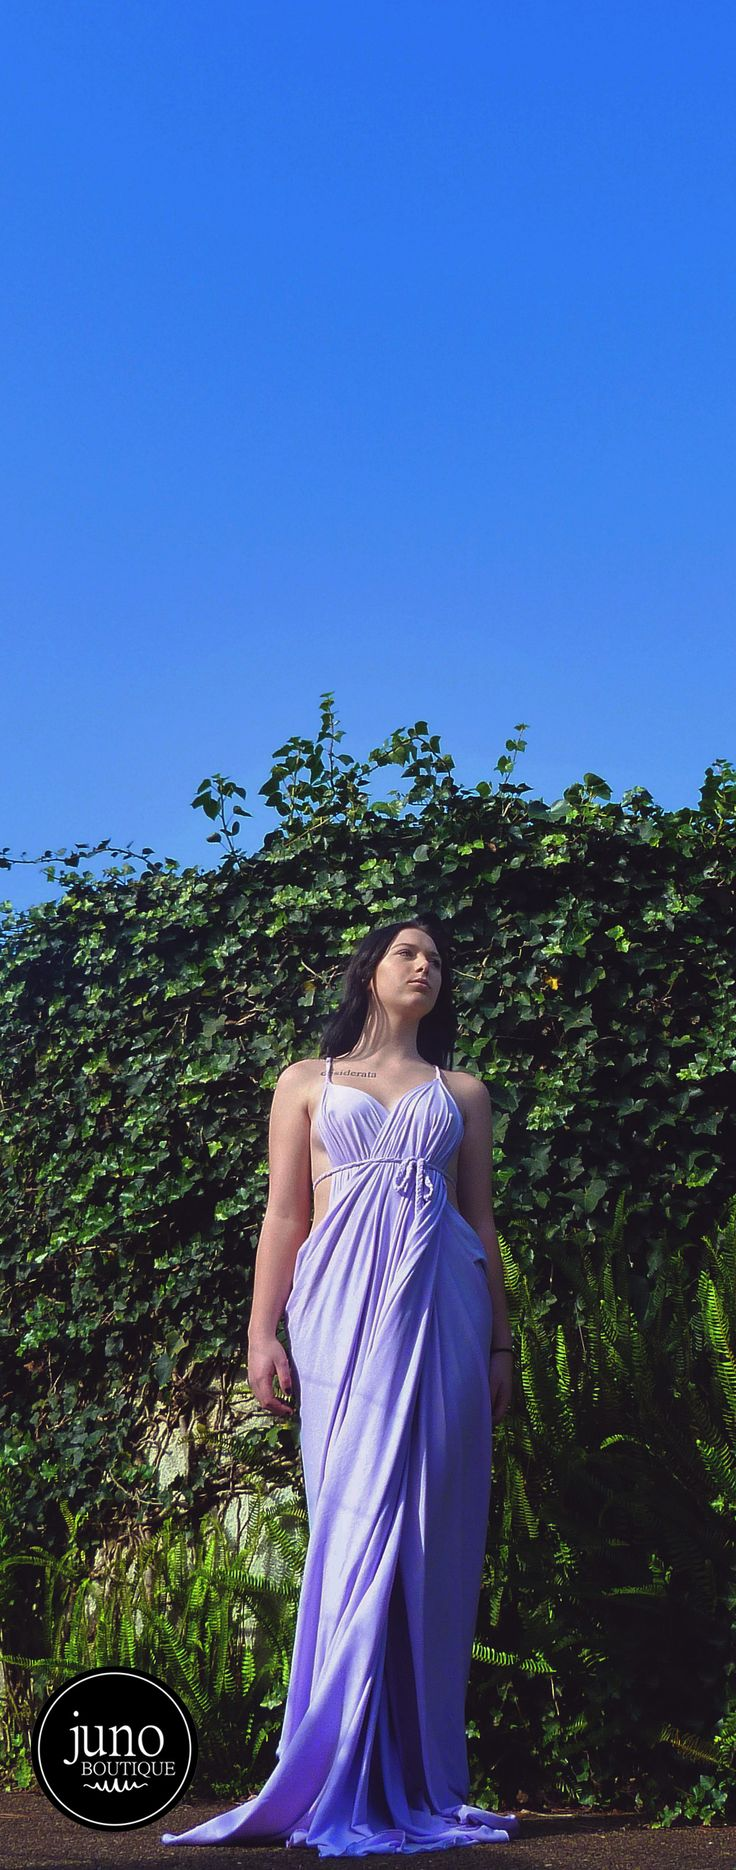 The Venus Gown - Gorgeous Jersey Knit Wrap Dress $85NZD Photography Gown